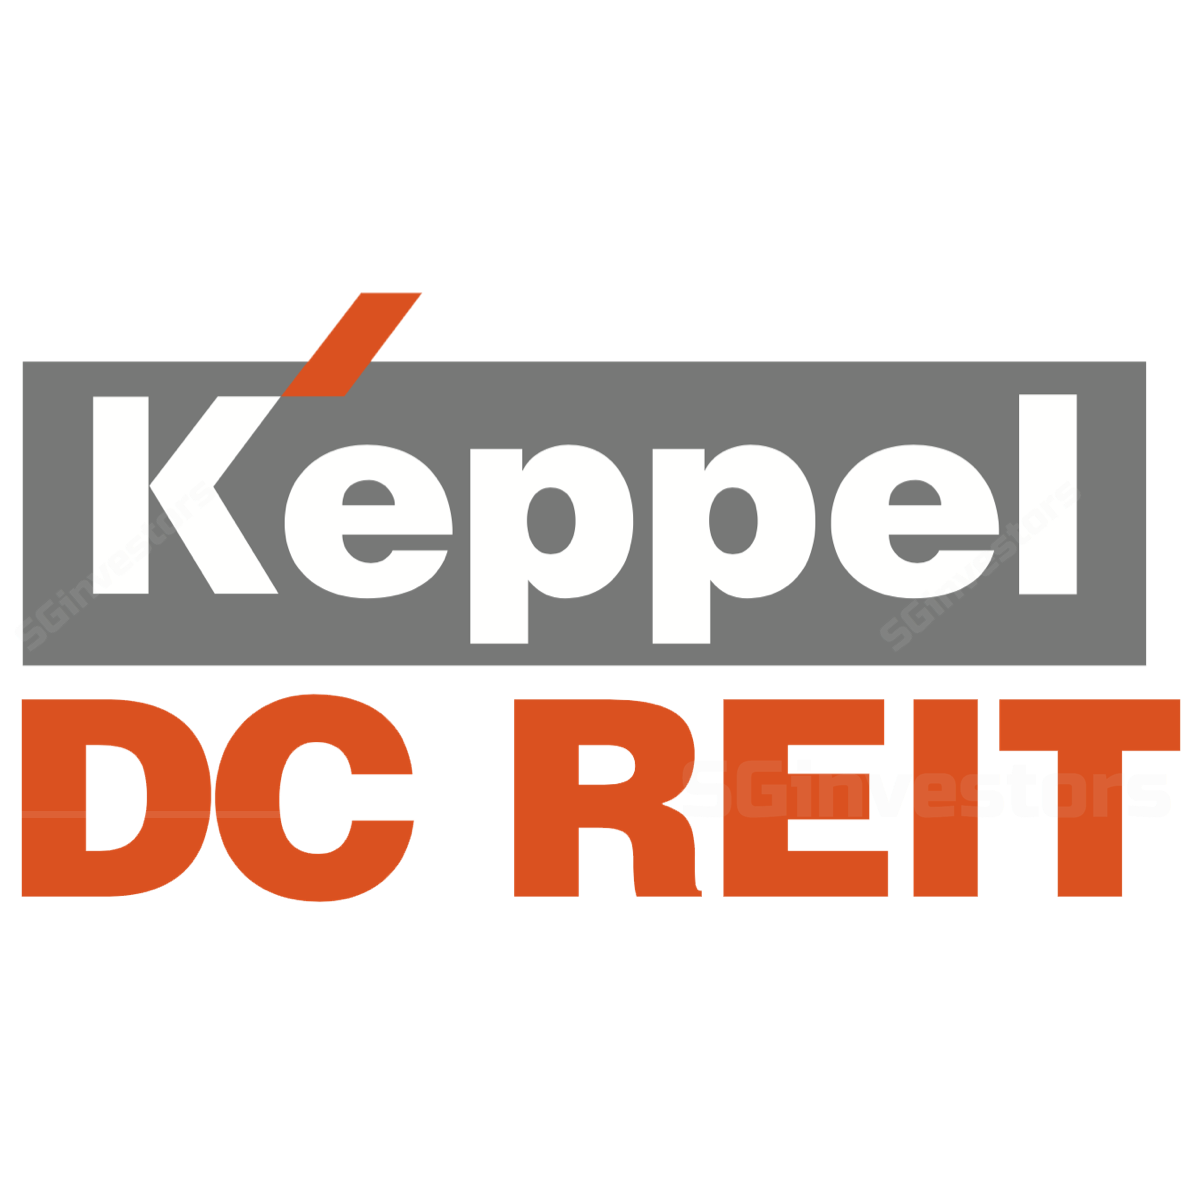 Keppel DC REIT - Phillip Securities 2017-04-18: Acquisition-driven growth; core results in line